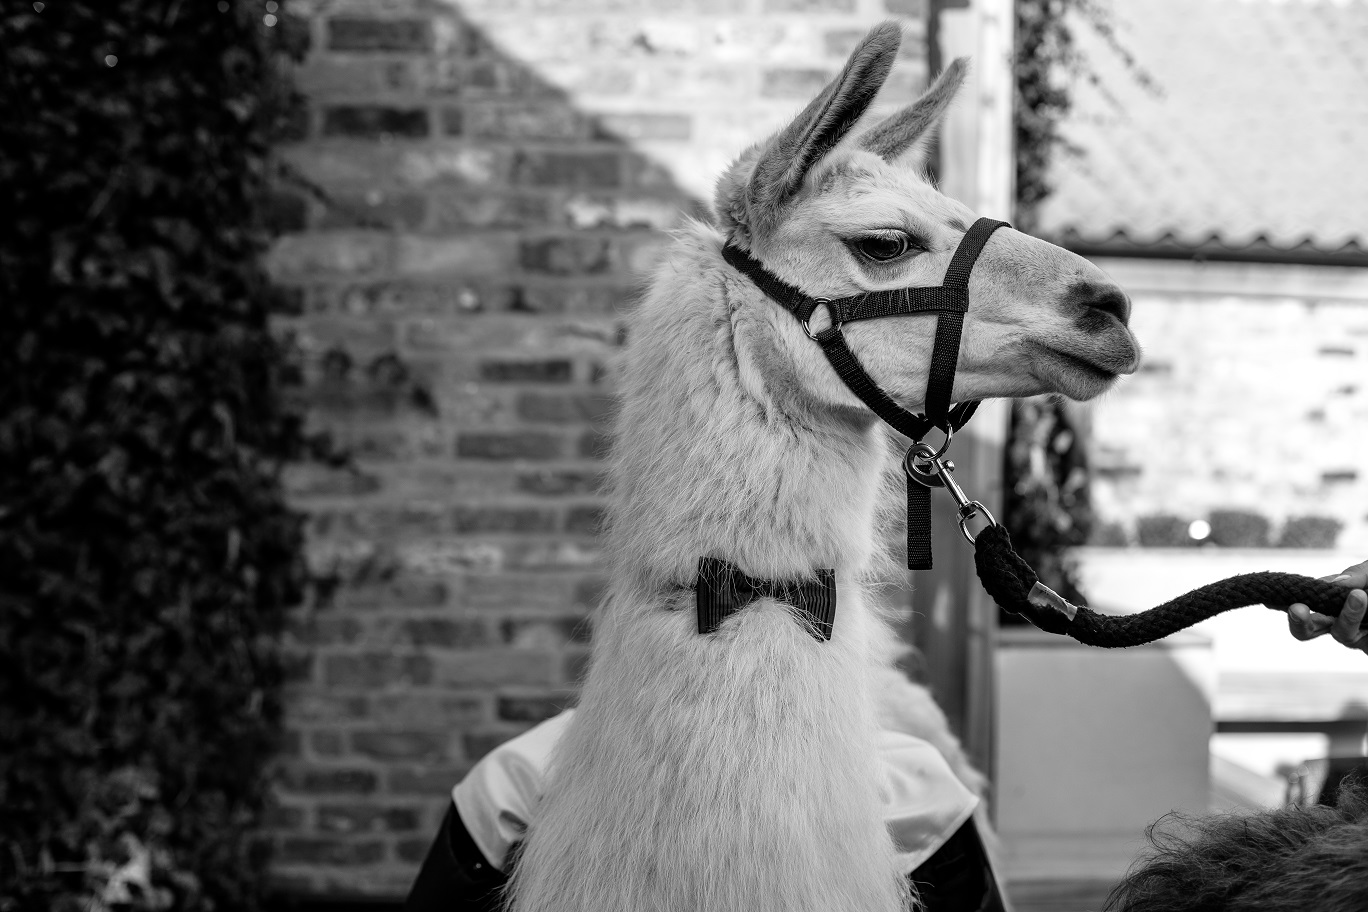 The name's Llama... Photo by www.sansomphotography.co.uk